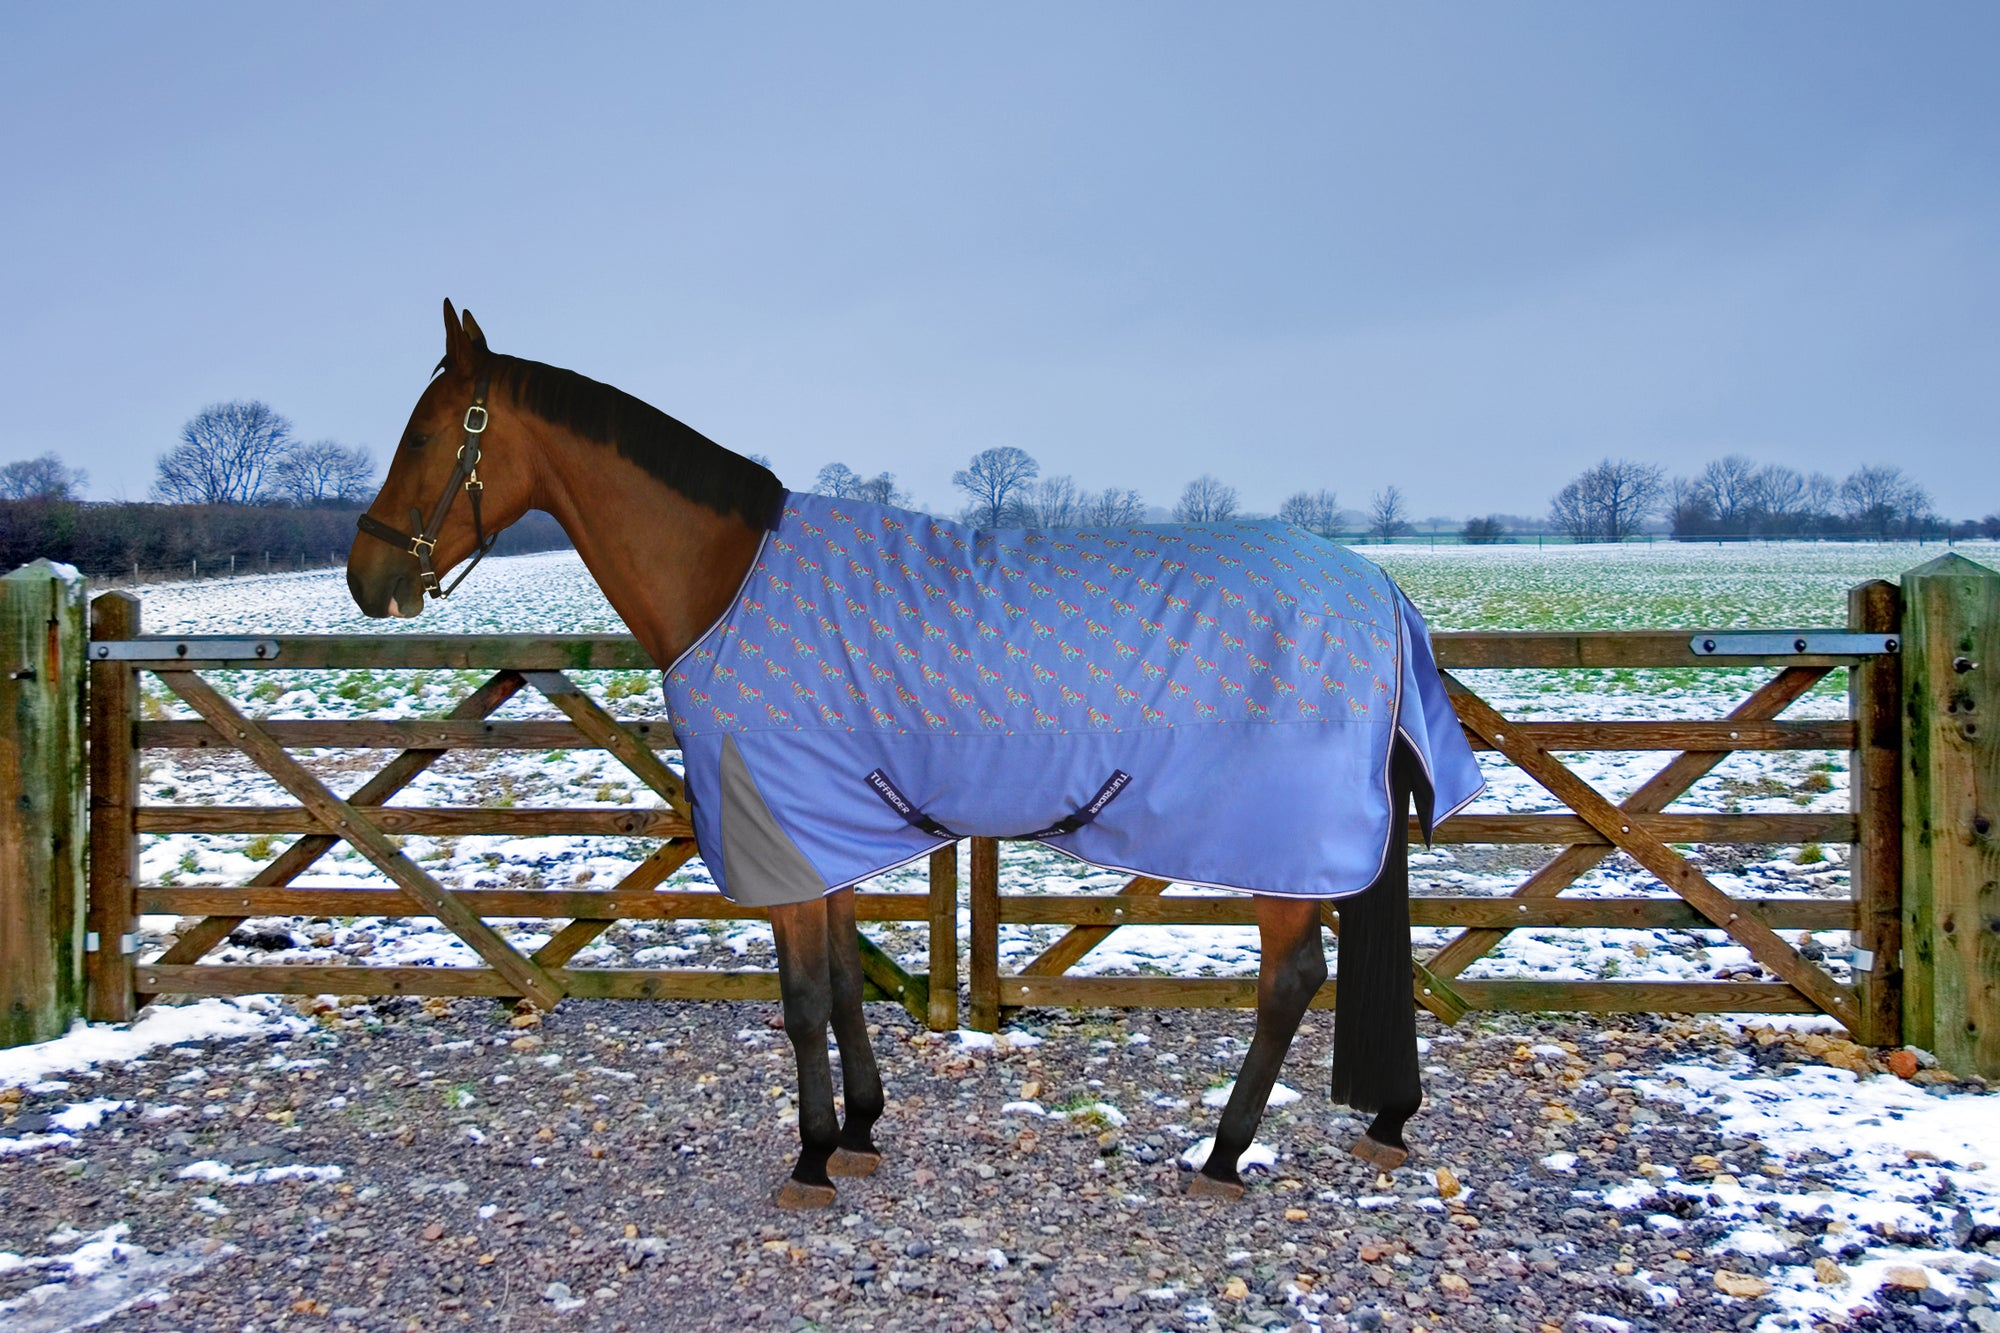 TuffRider 1200D Ripstop Turnout Blanket with 220gms Medium Weight - Adorable Horse Print - Breeches.com